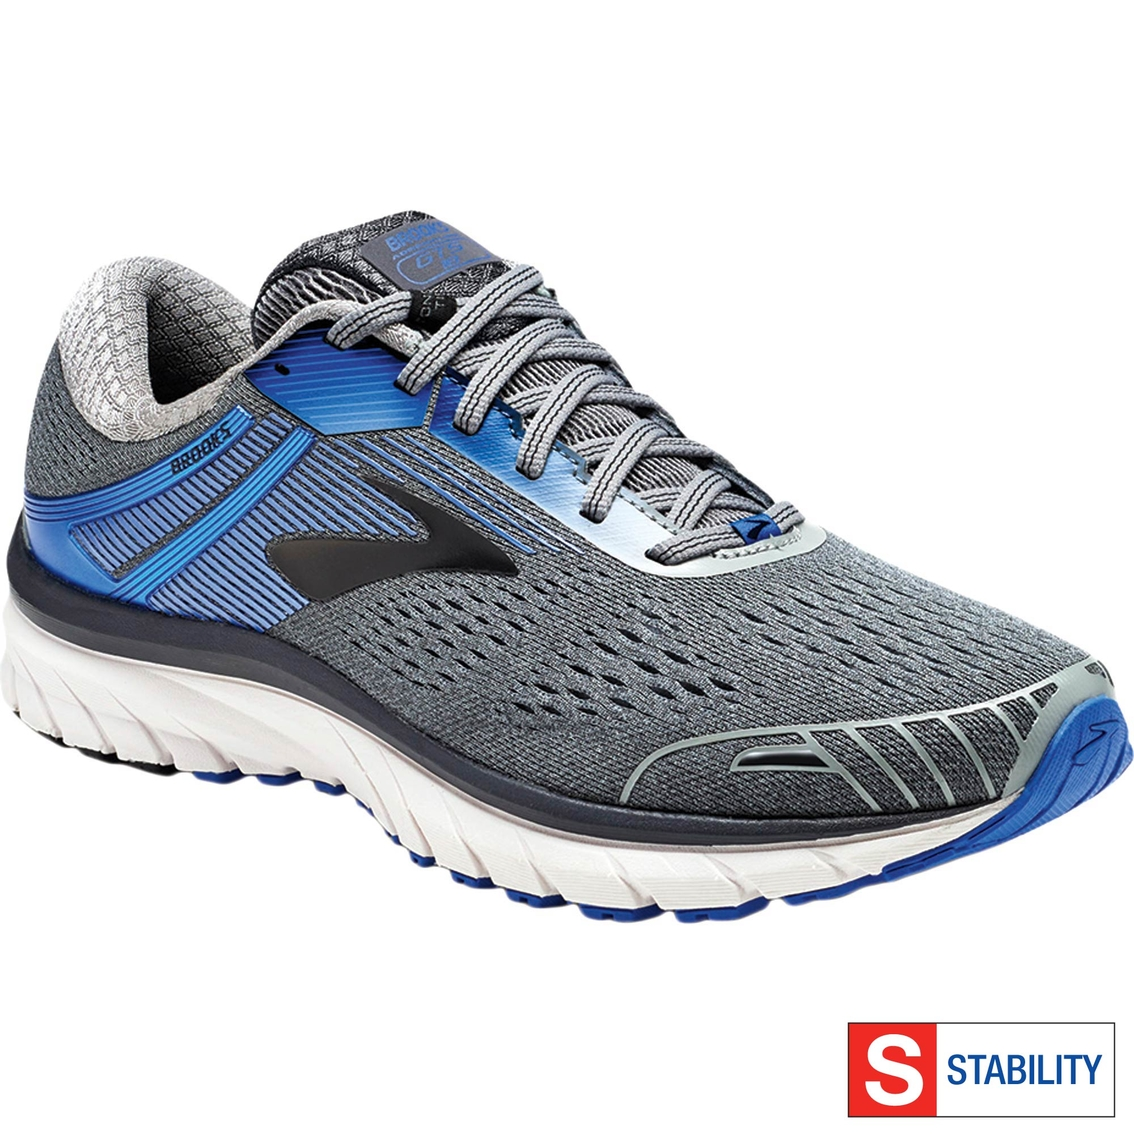 2f41a22e091 Brooks Men s Adrenaline Gts 18 Running Shoes